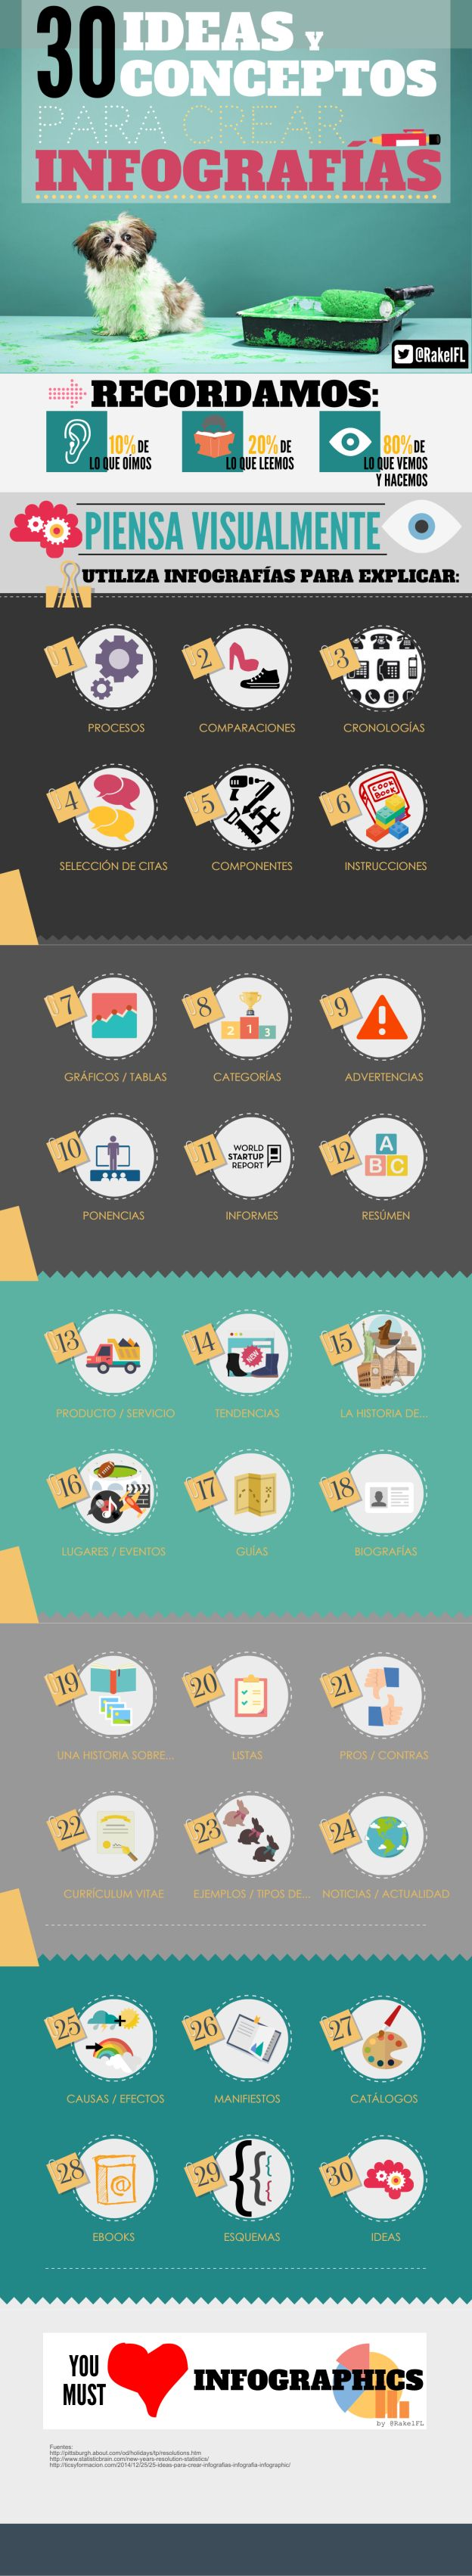 30 IDEAS Y CONCEPTOS PARA CREAR INFOGRAFÍAS #INFOGRAFIA #INFOGRAPHIC #MARKETING…                                                                                                                                                                                 Más